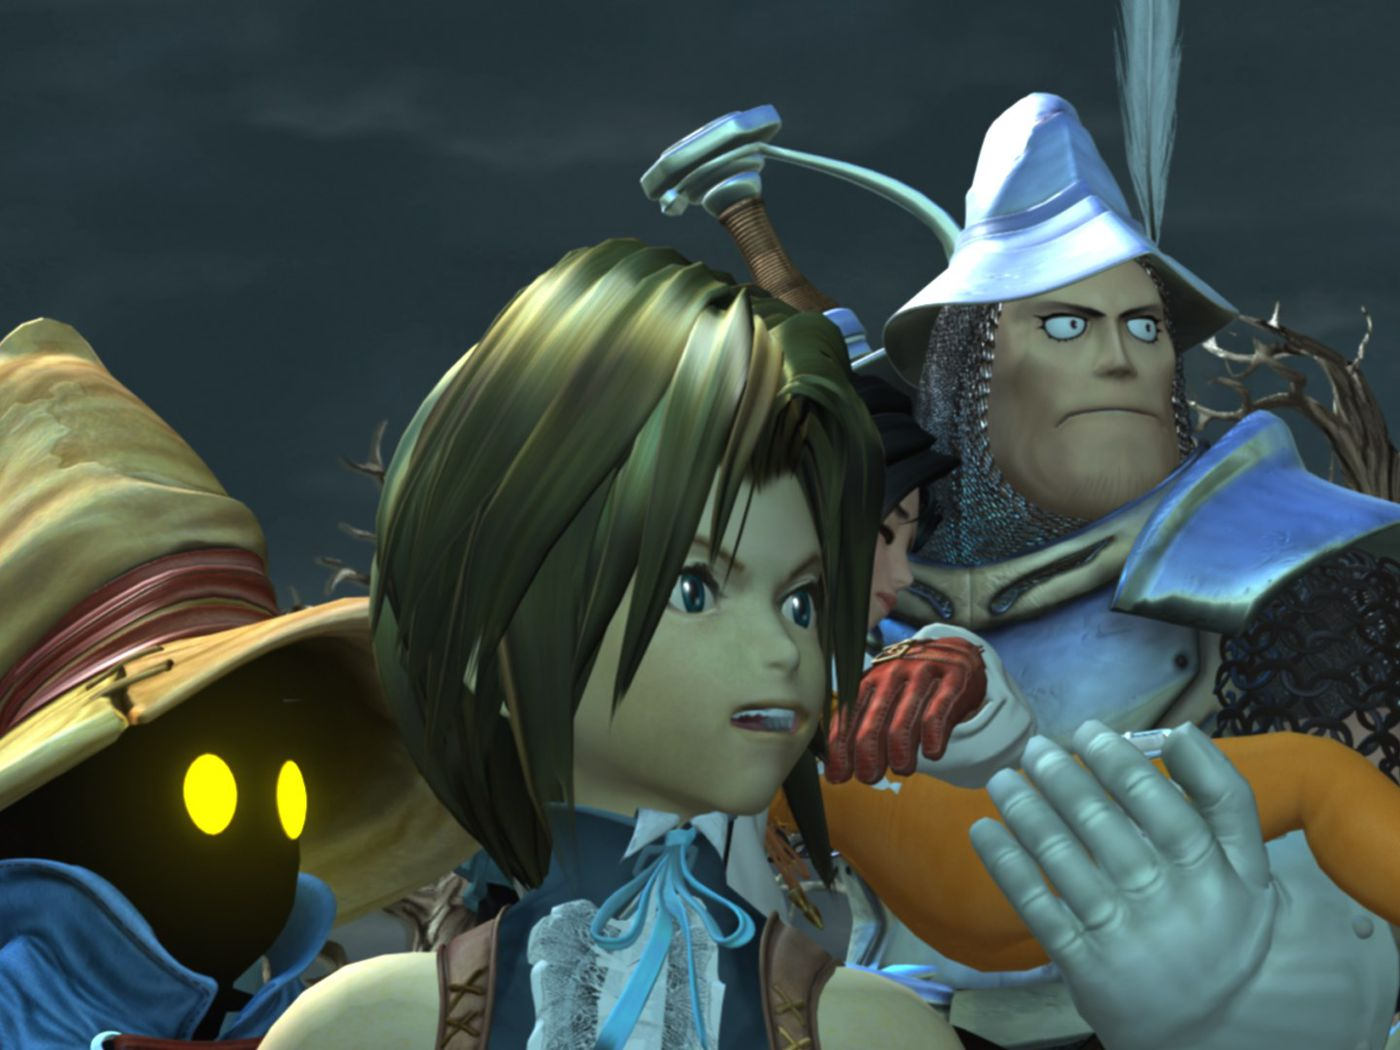 Final Fantasy 9 feels right at home on the Switch - The Verge